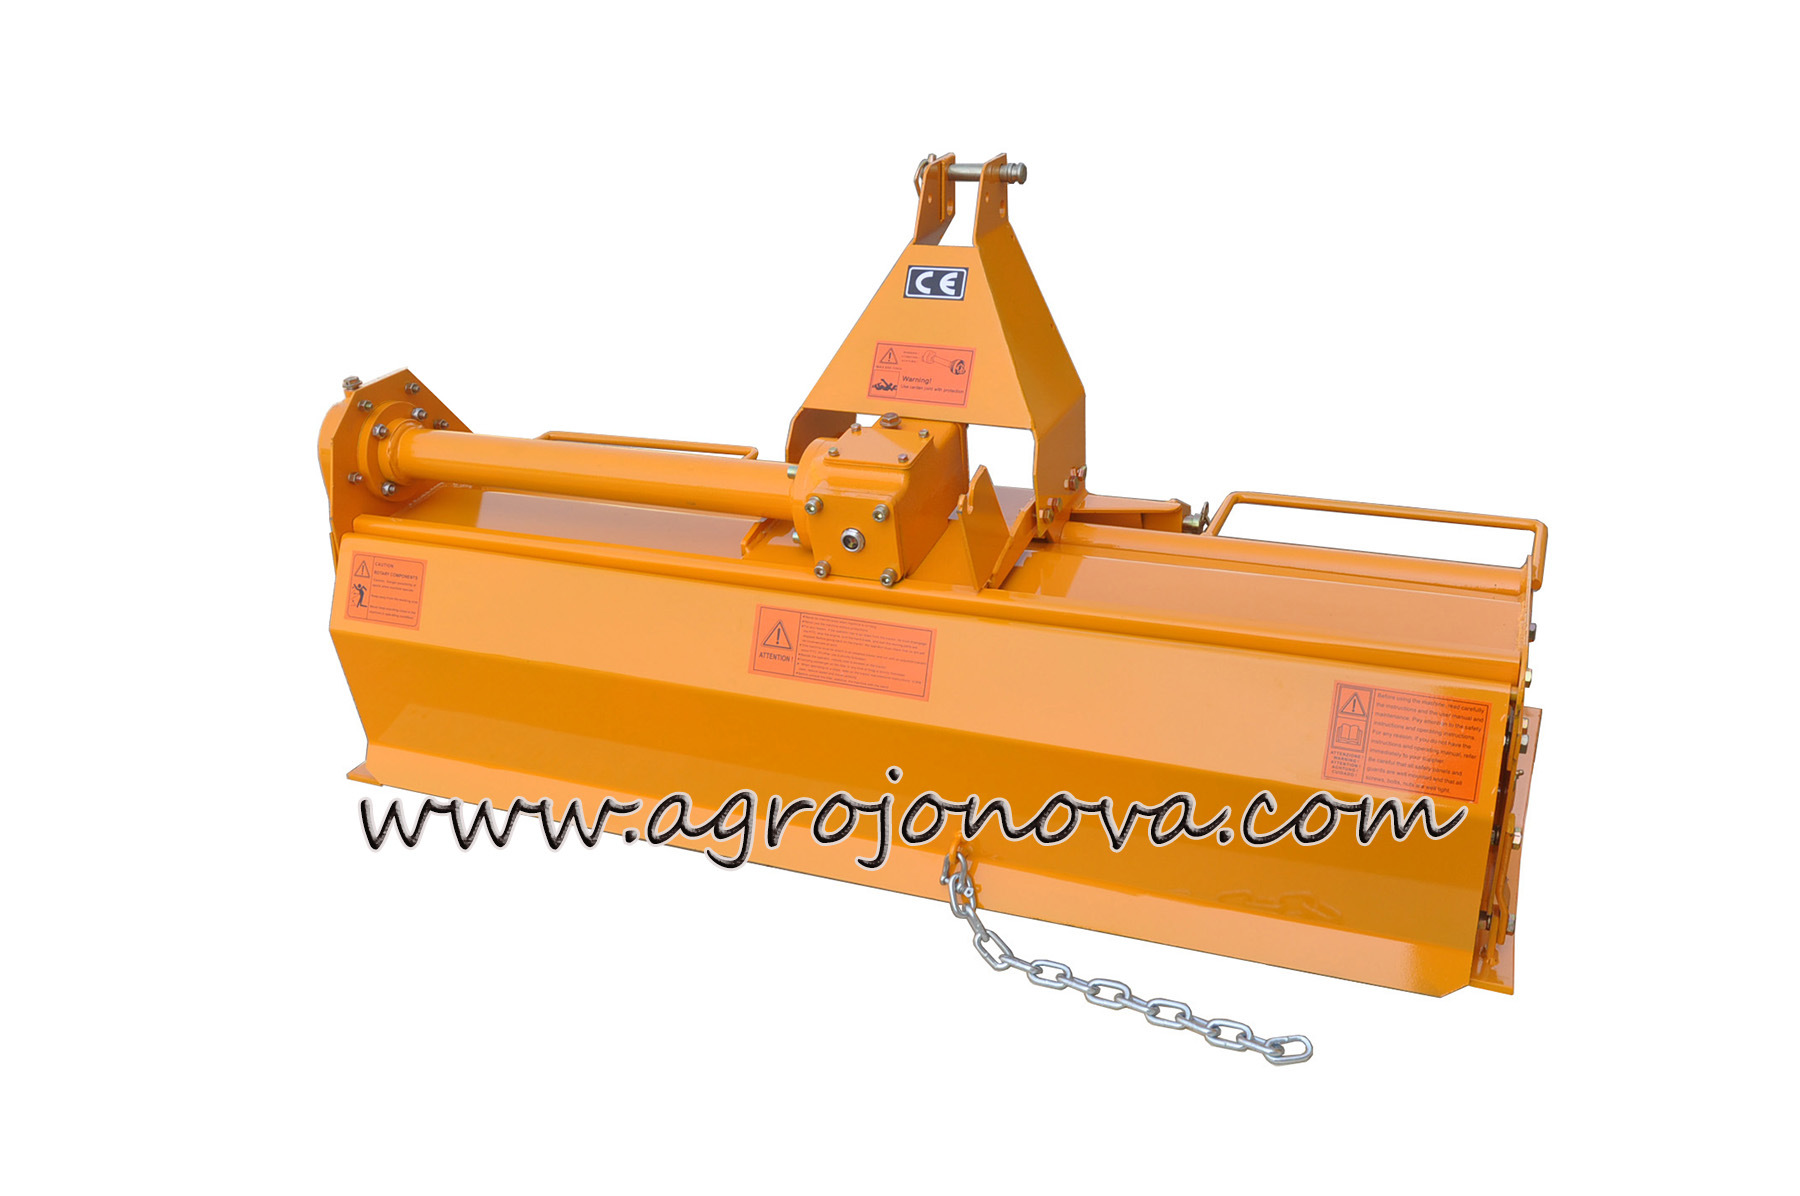 Tractor 3-Point Rotary Tiller Pto Shaft Tl Ce